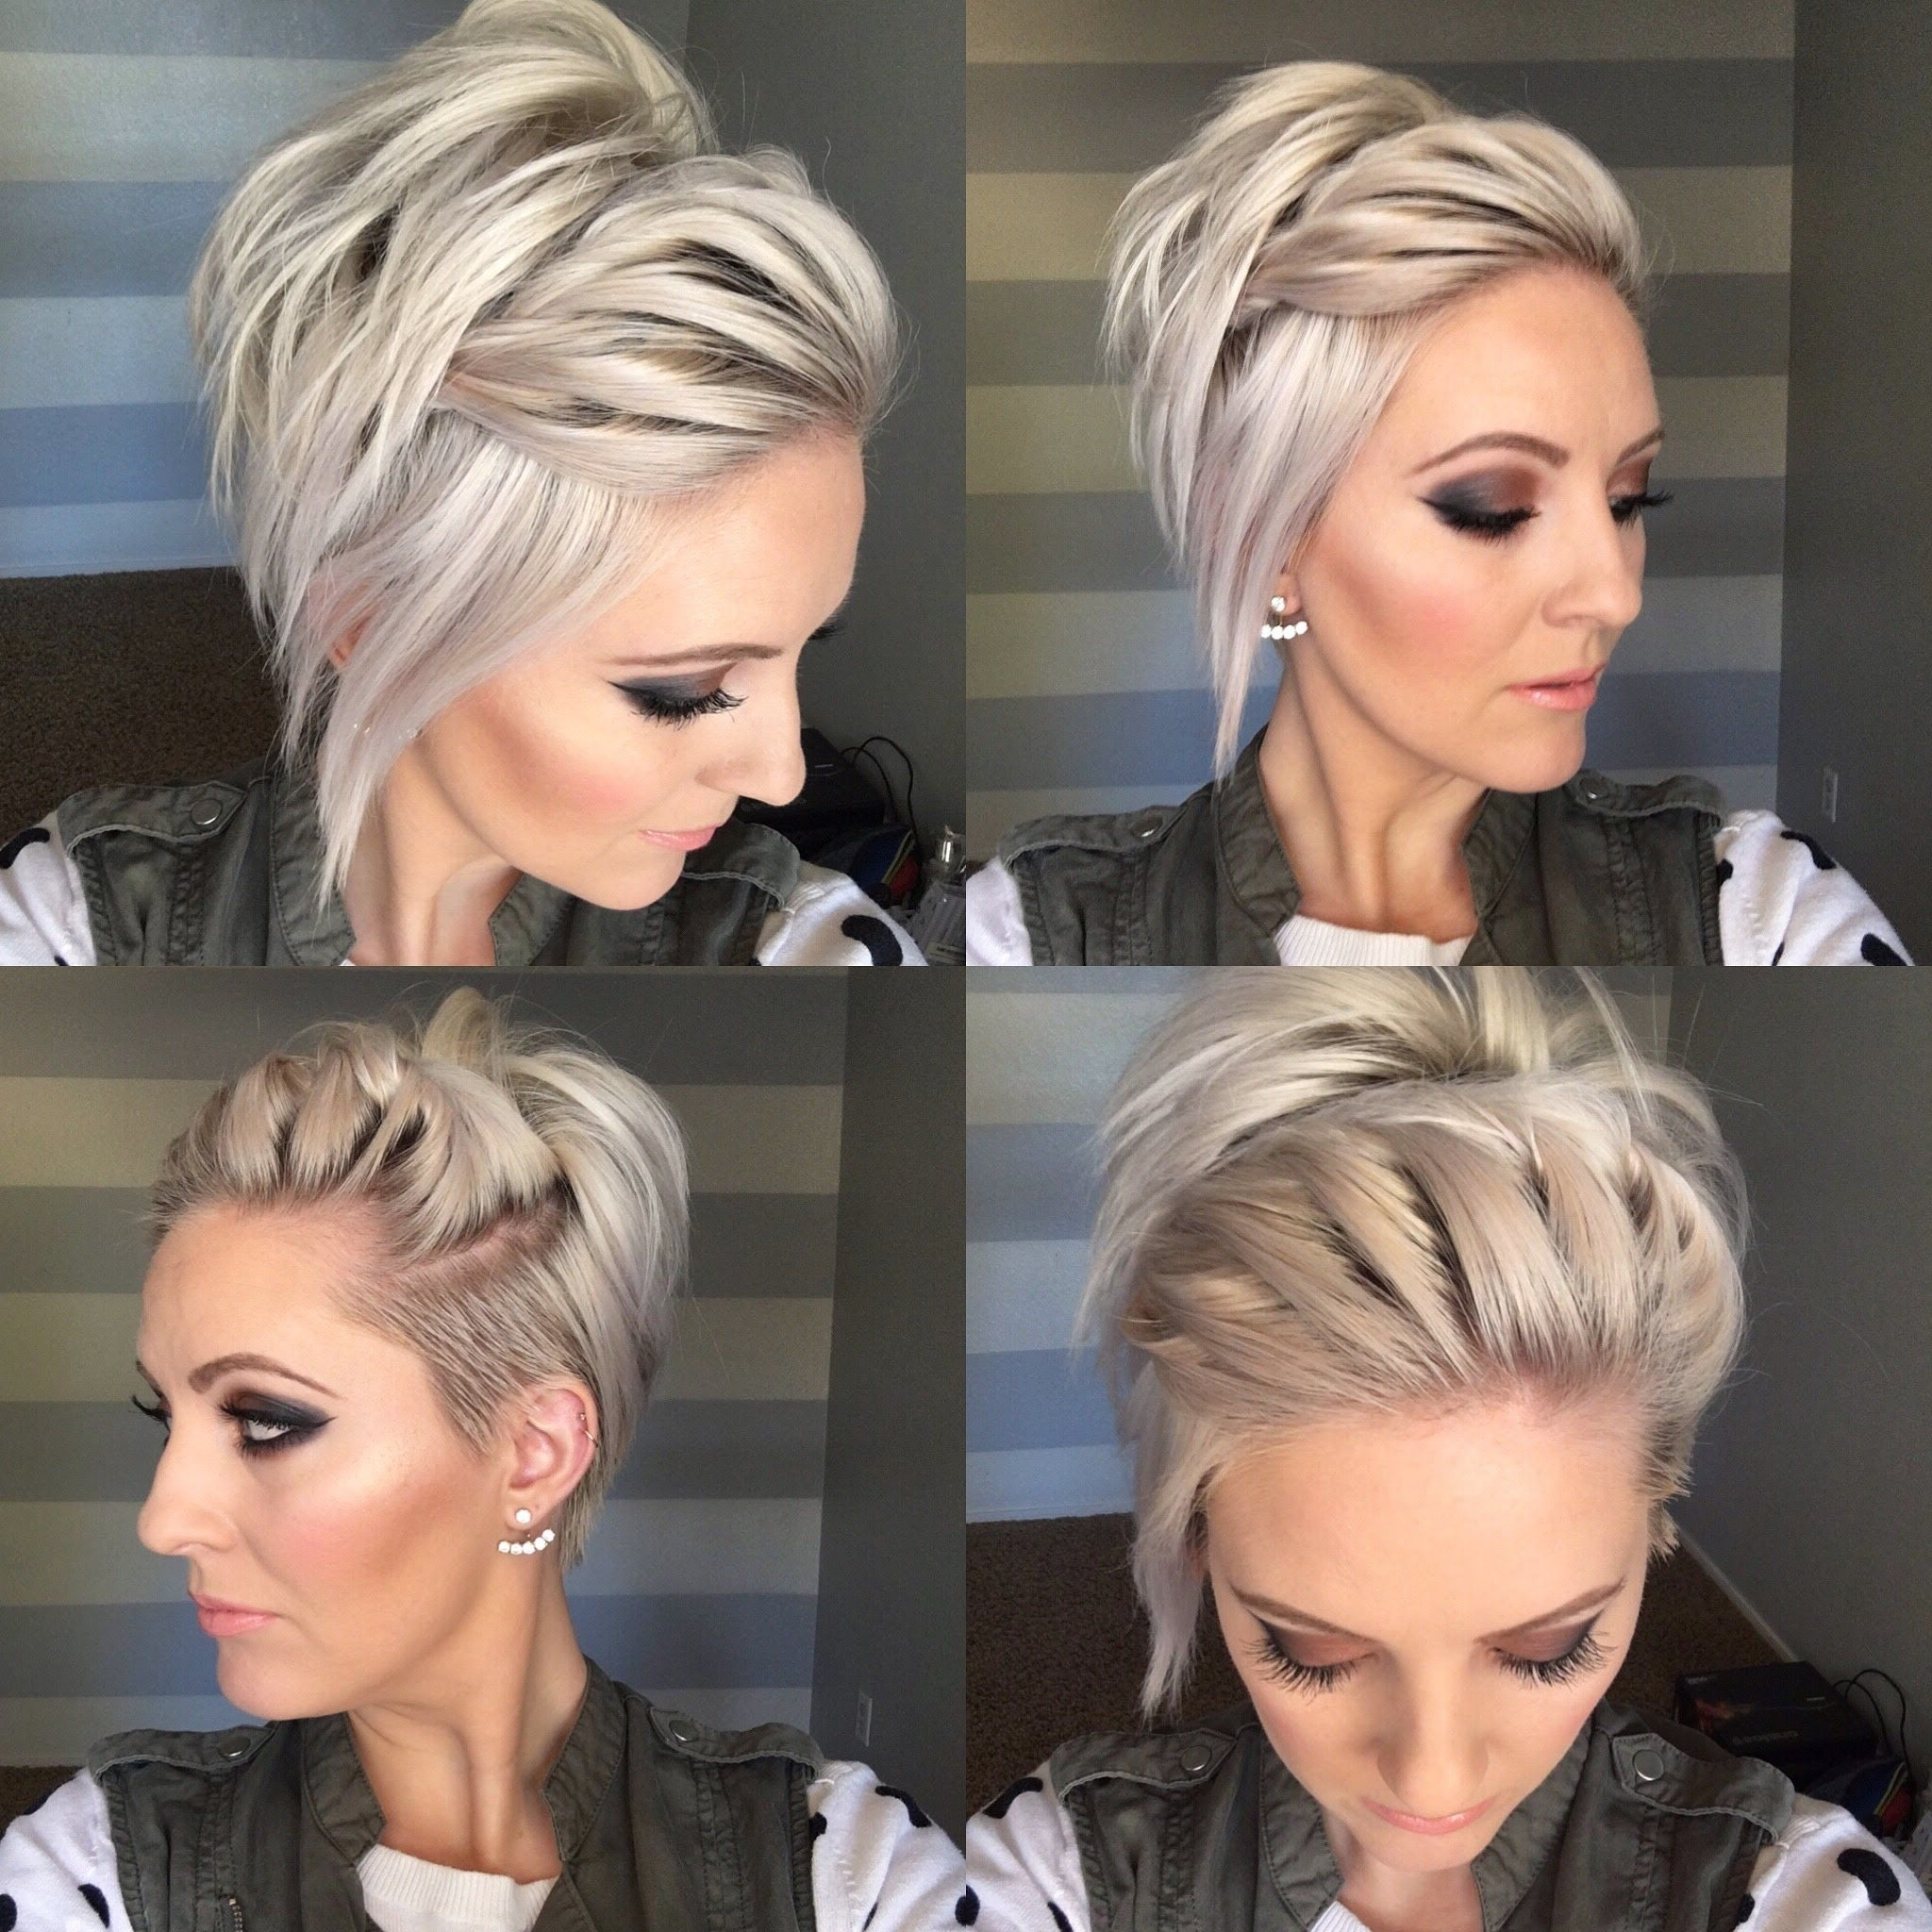 Transform Wedding Hairstyles For Short Bob Hair On Easy Hairstyle In Most Popular Wedding Hairstyles For Short Bob Hair (View 8 of 15)